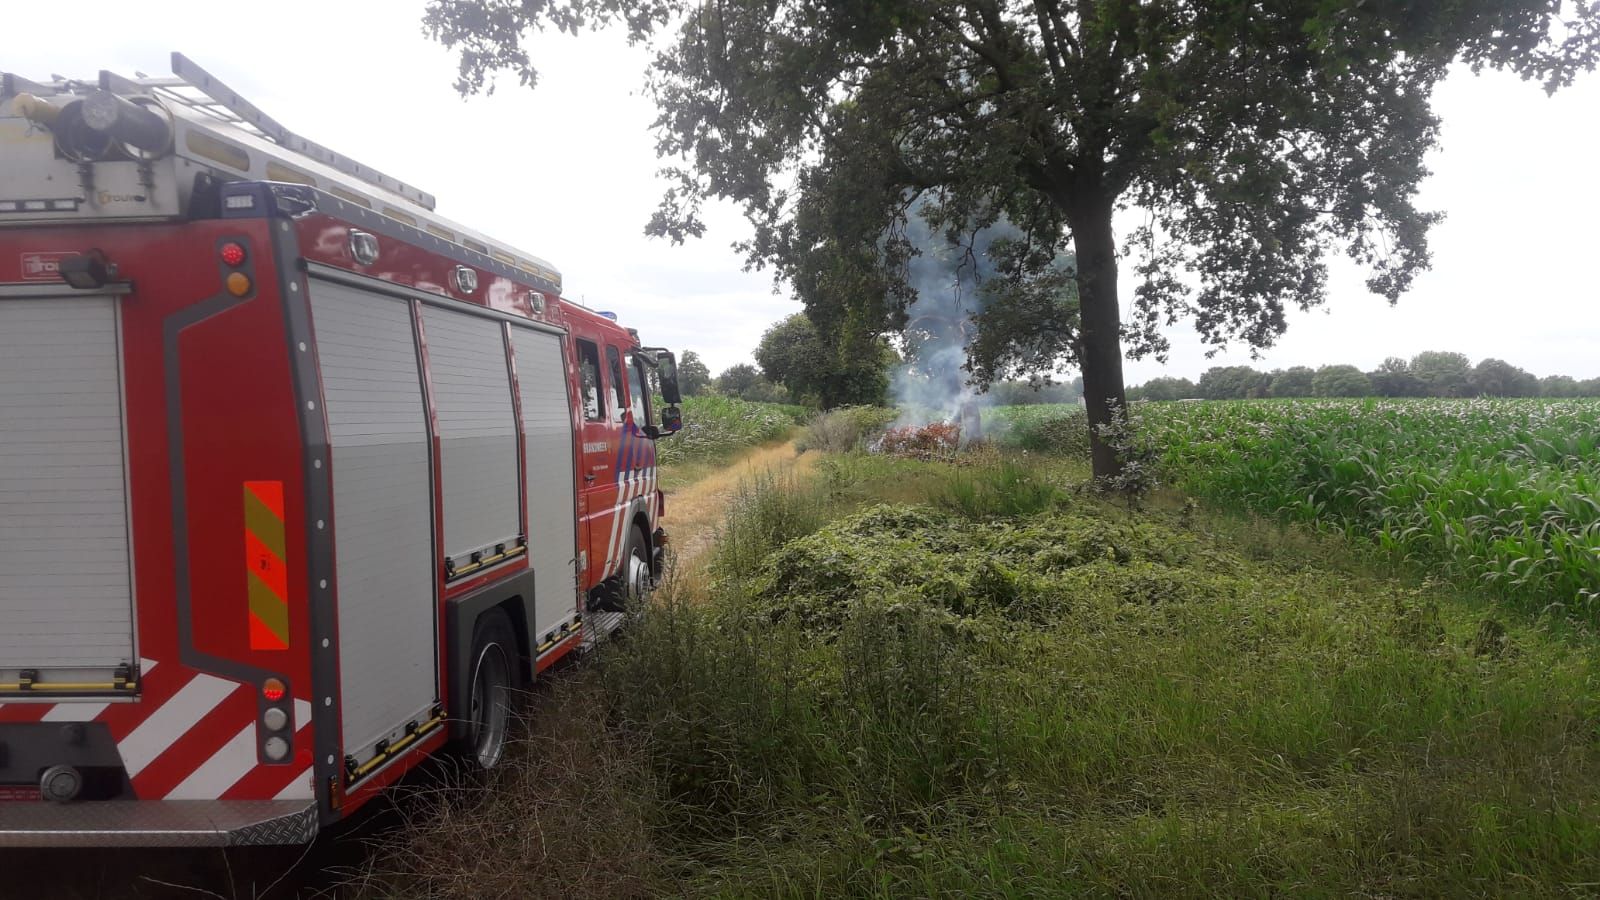 20-07-2019-Bermbrand-Sint-Oedenrode-01